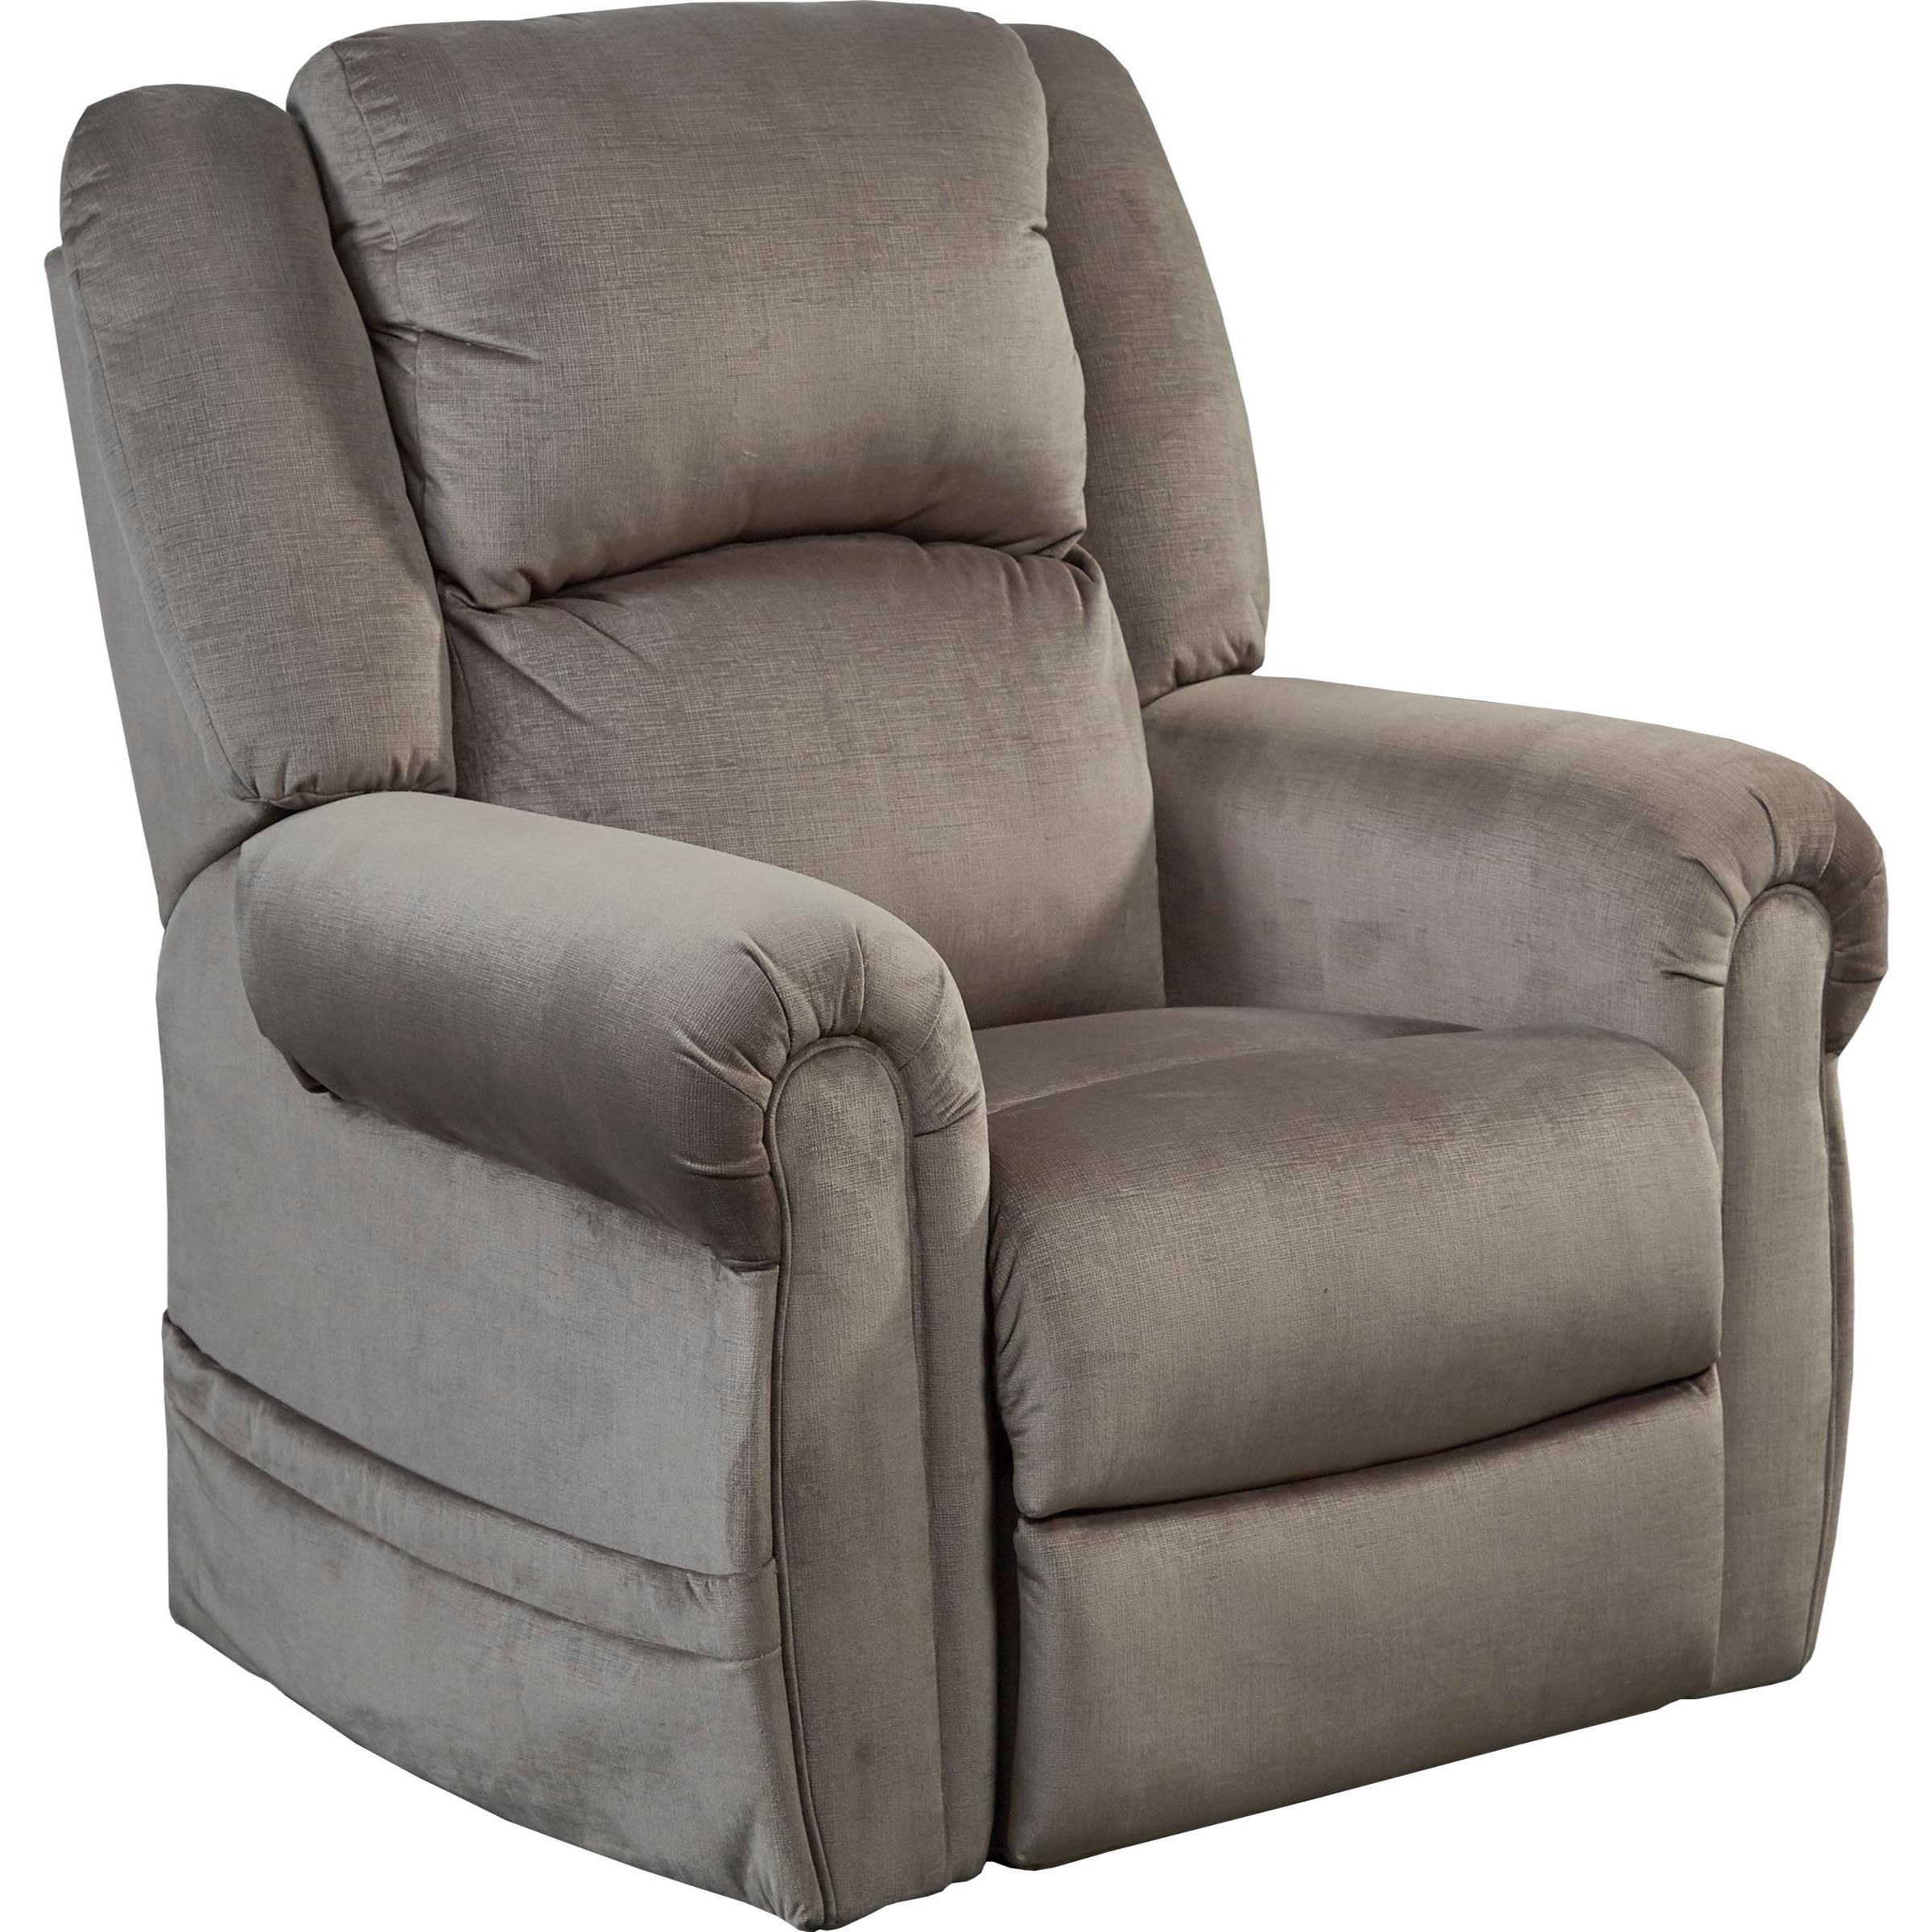 recliner chairs that lift. Catnapper Motion Chairs And ReclinersSpencer Lift Recliner With Power Headrest That F